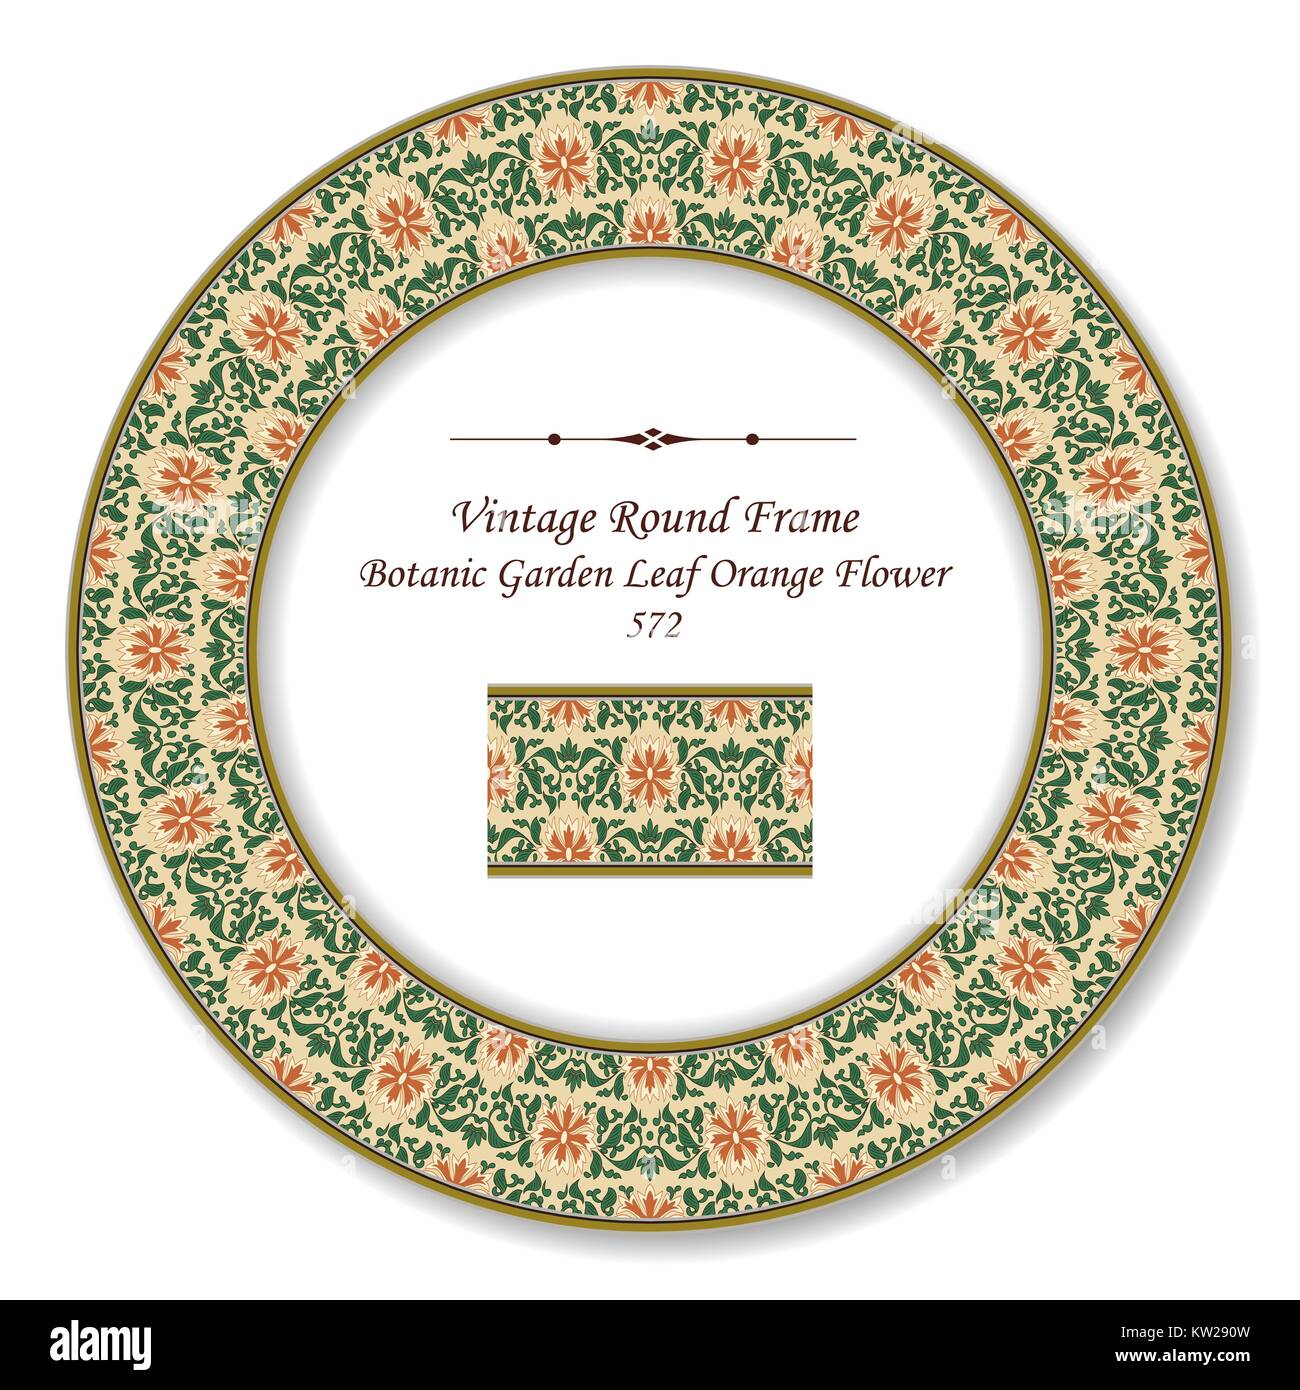 Vintage Round Retro Frame Botanic Garden Leaf Orange Flower Stock Vector